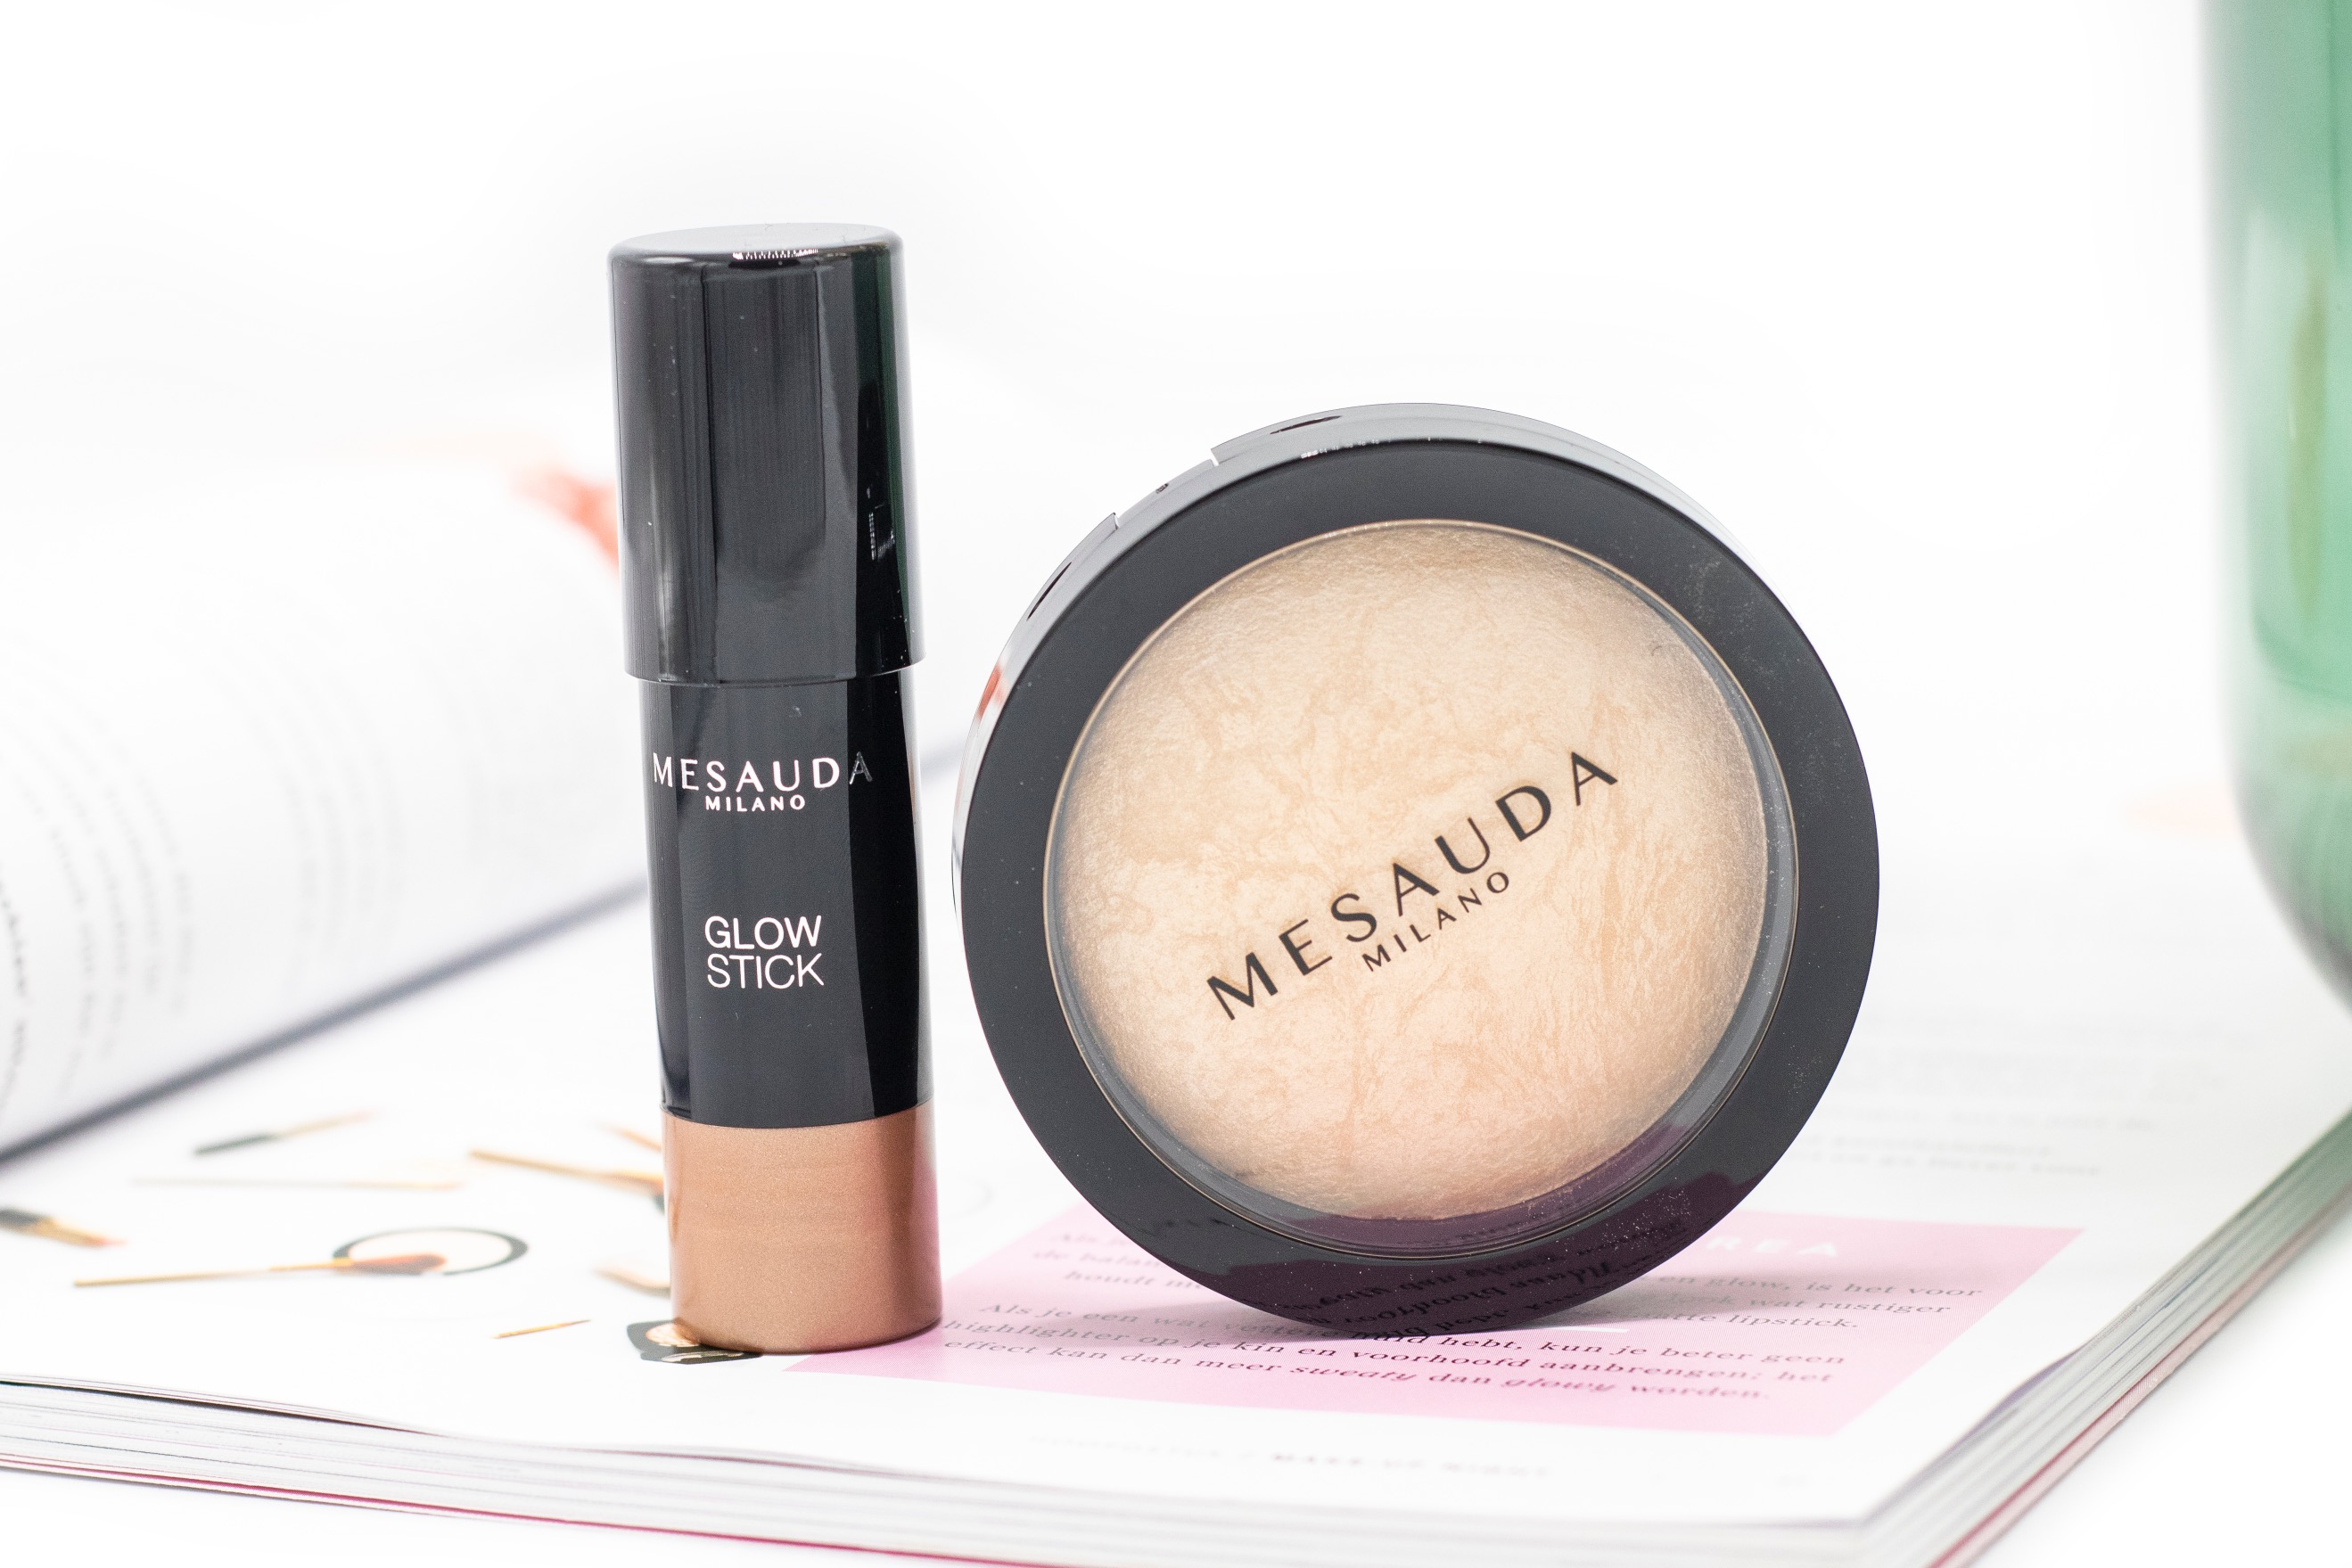 mesauda milano highlighter